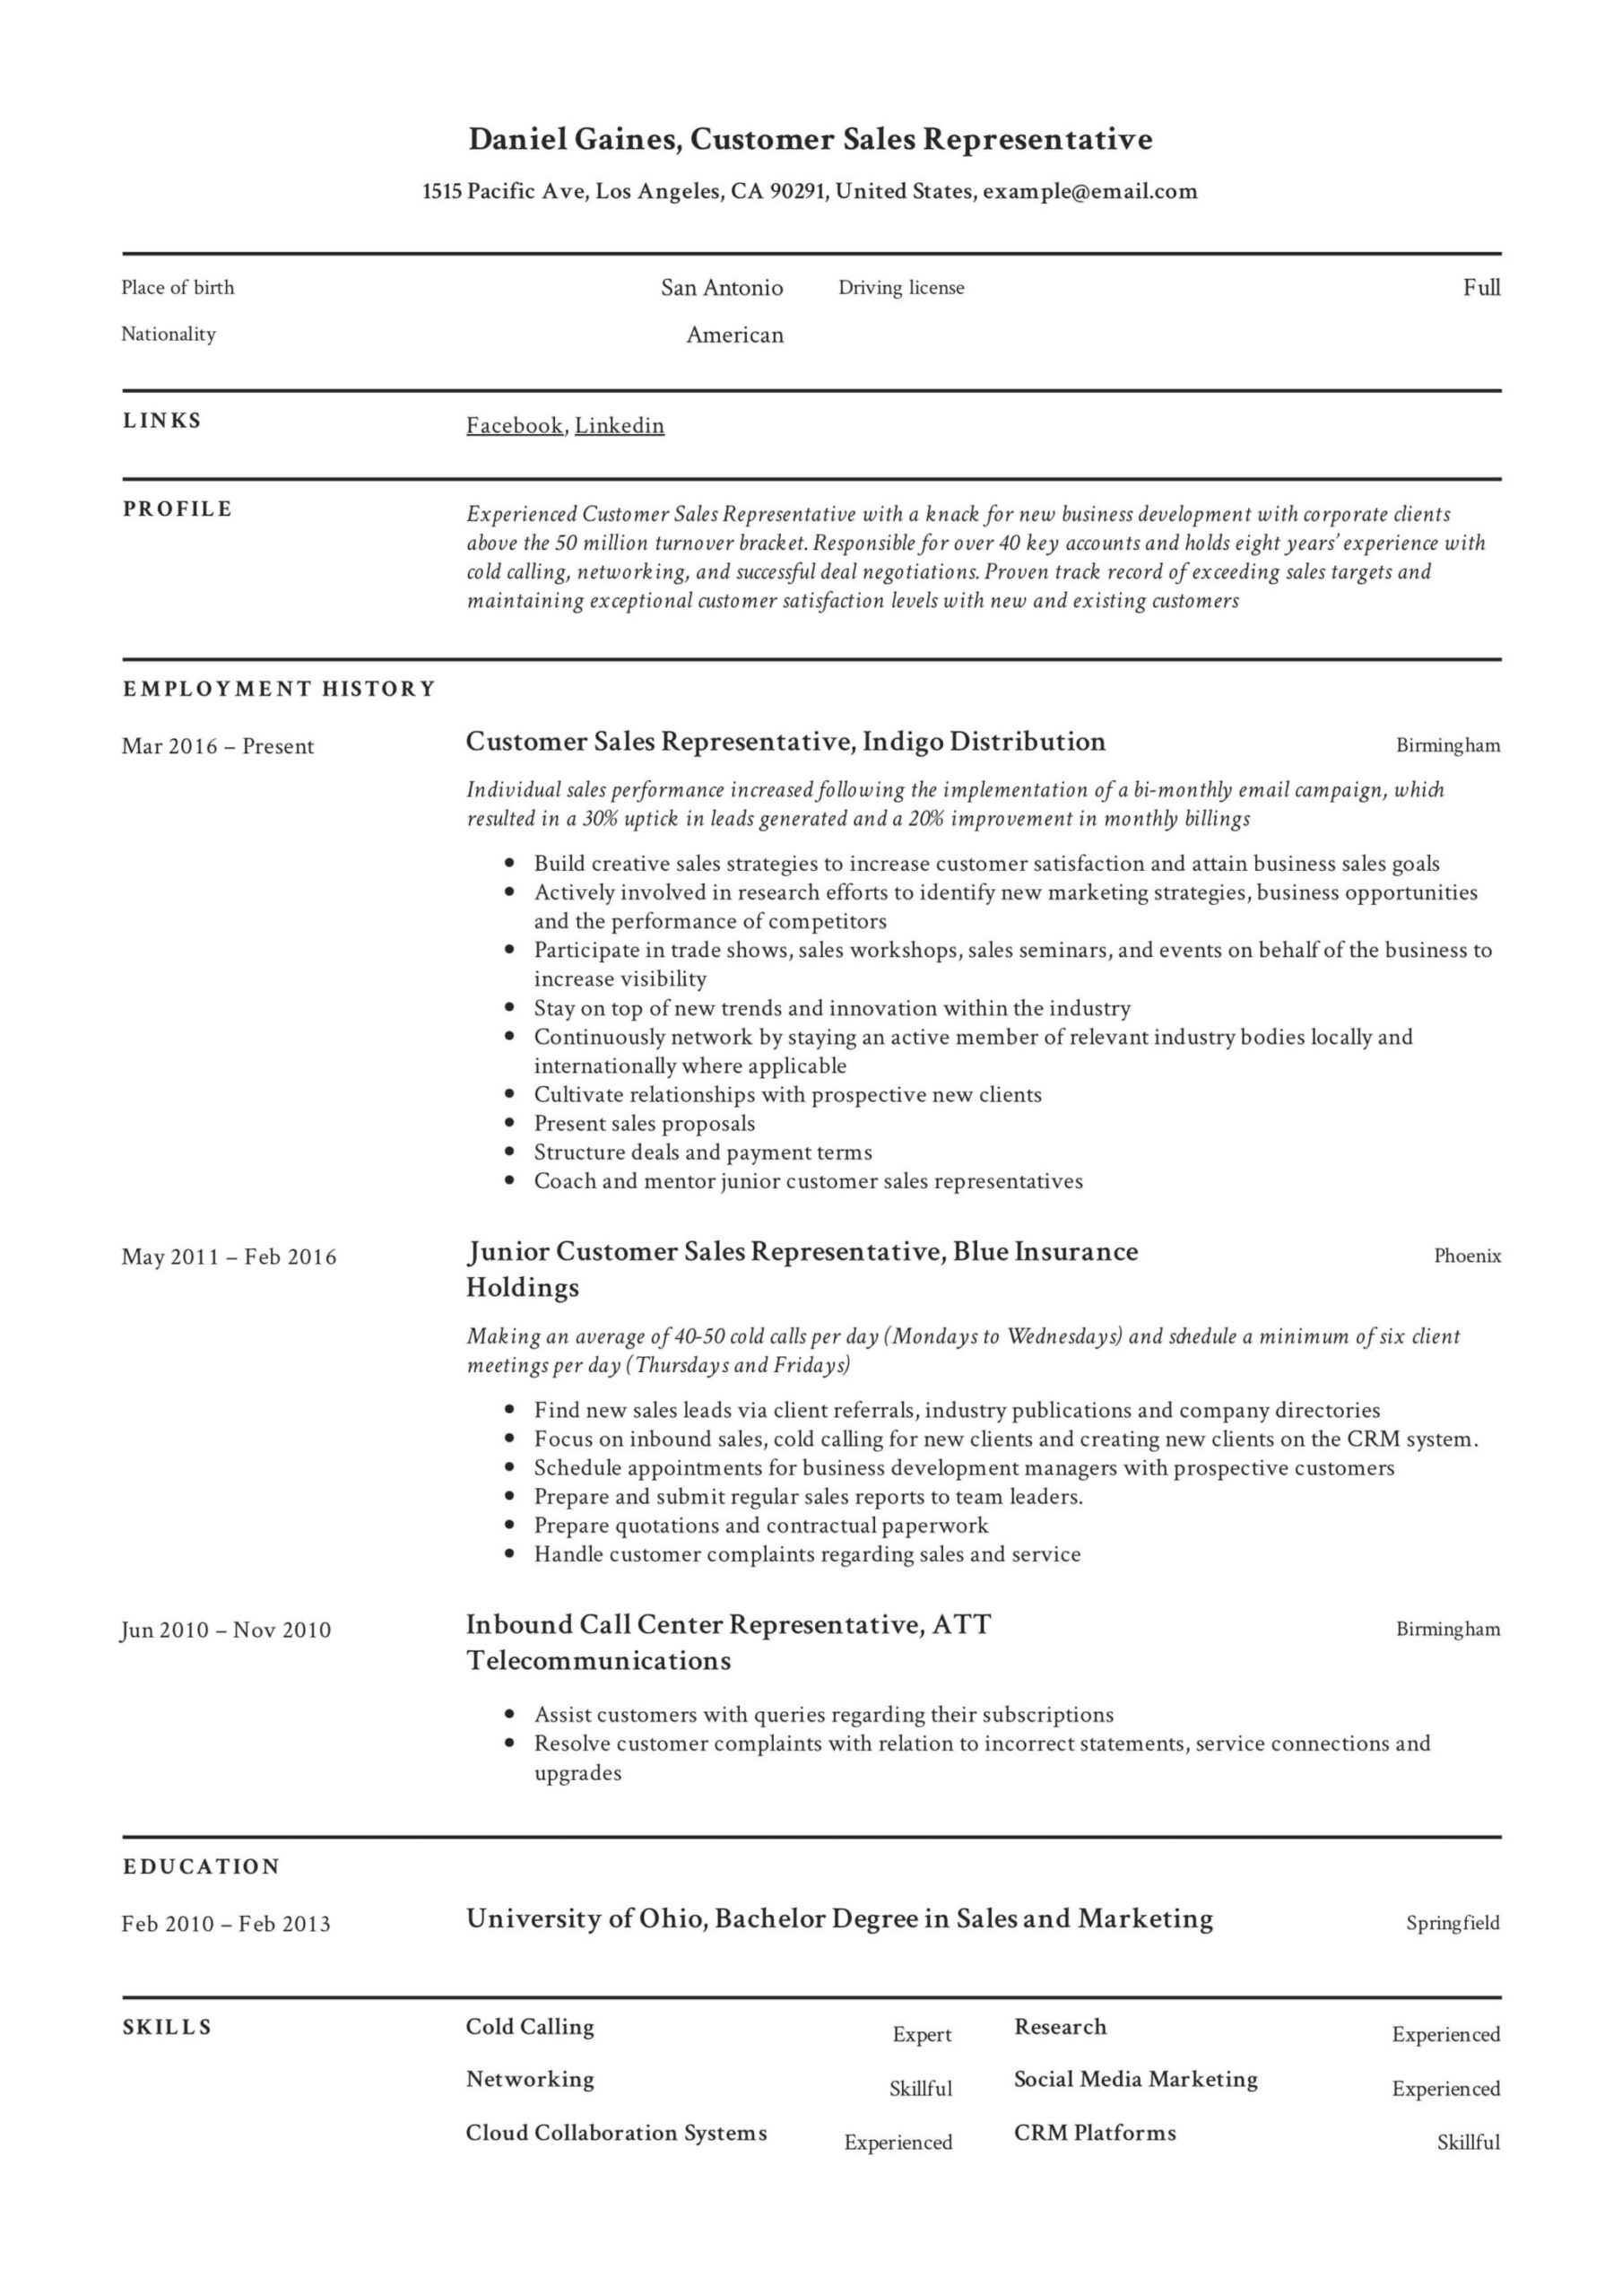 guide customer representative resume samples pdf writers for pharmaceutical bahasa melayu Resume Resume Writers For Pharmaceutical Sales